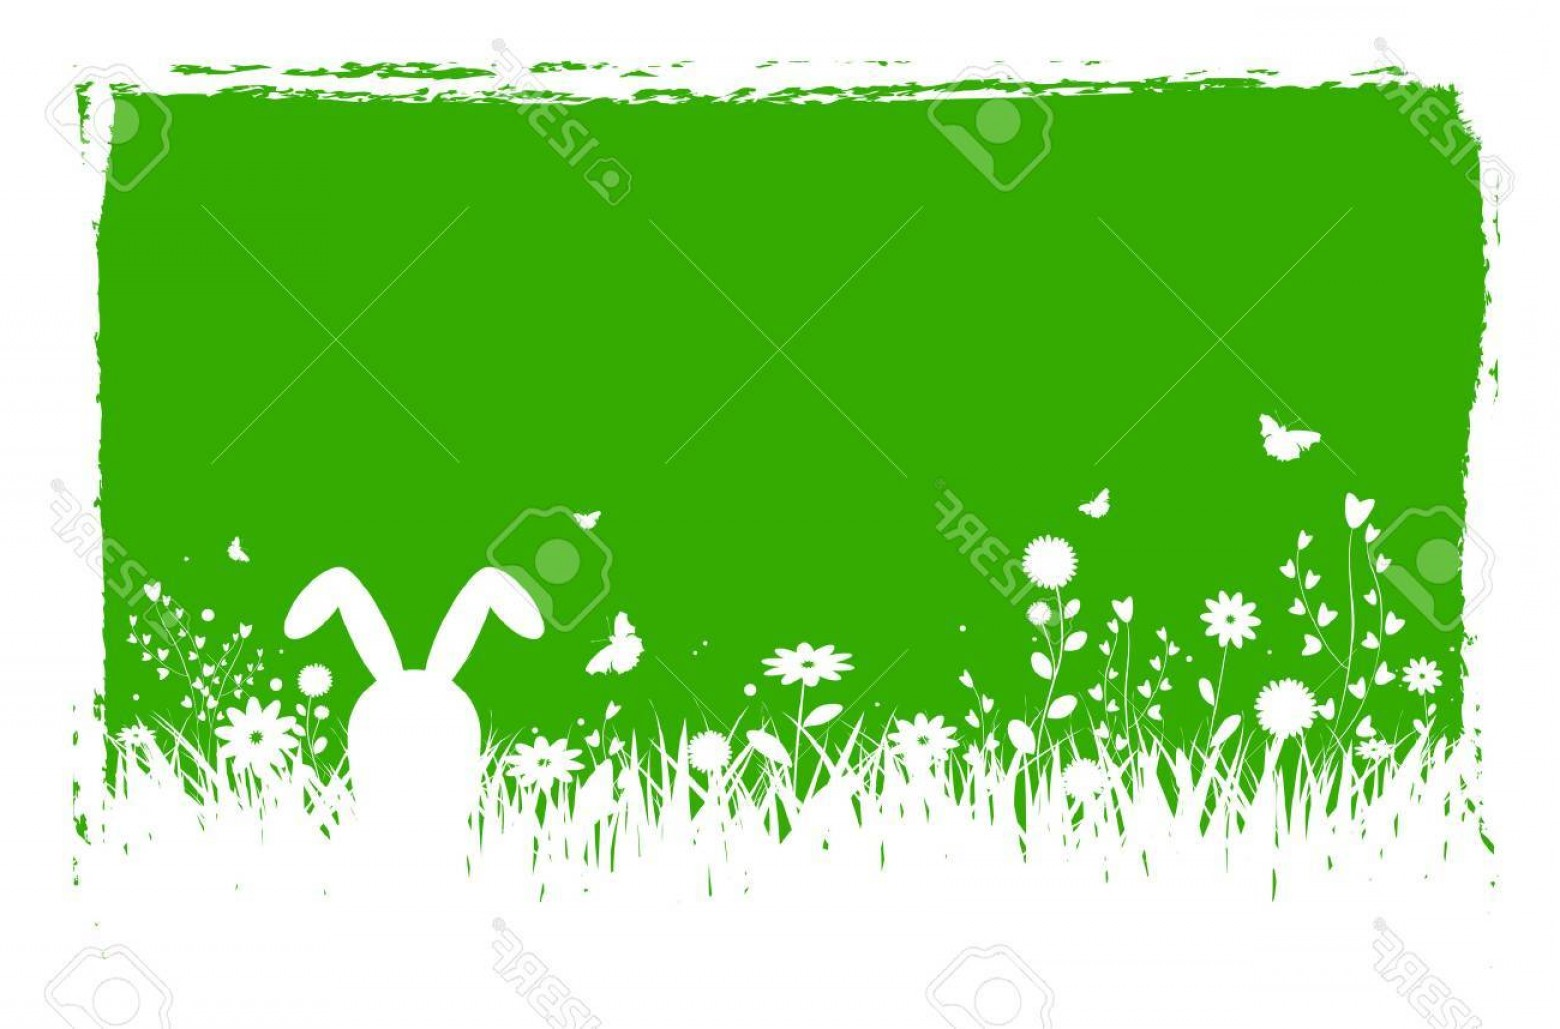 Spring Vector Silhouette: Photostock Vector Spring Silhouette Easter Background With Abstract Grass Flowers Bunny Butterflies And Grungy Border